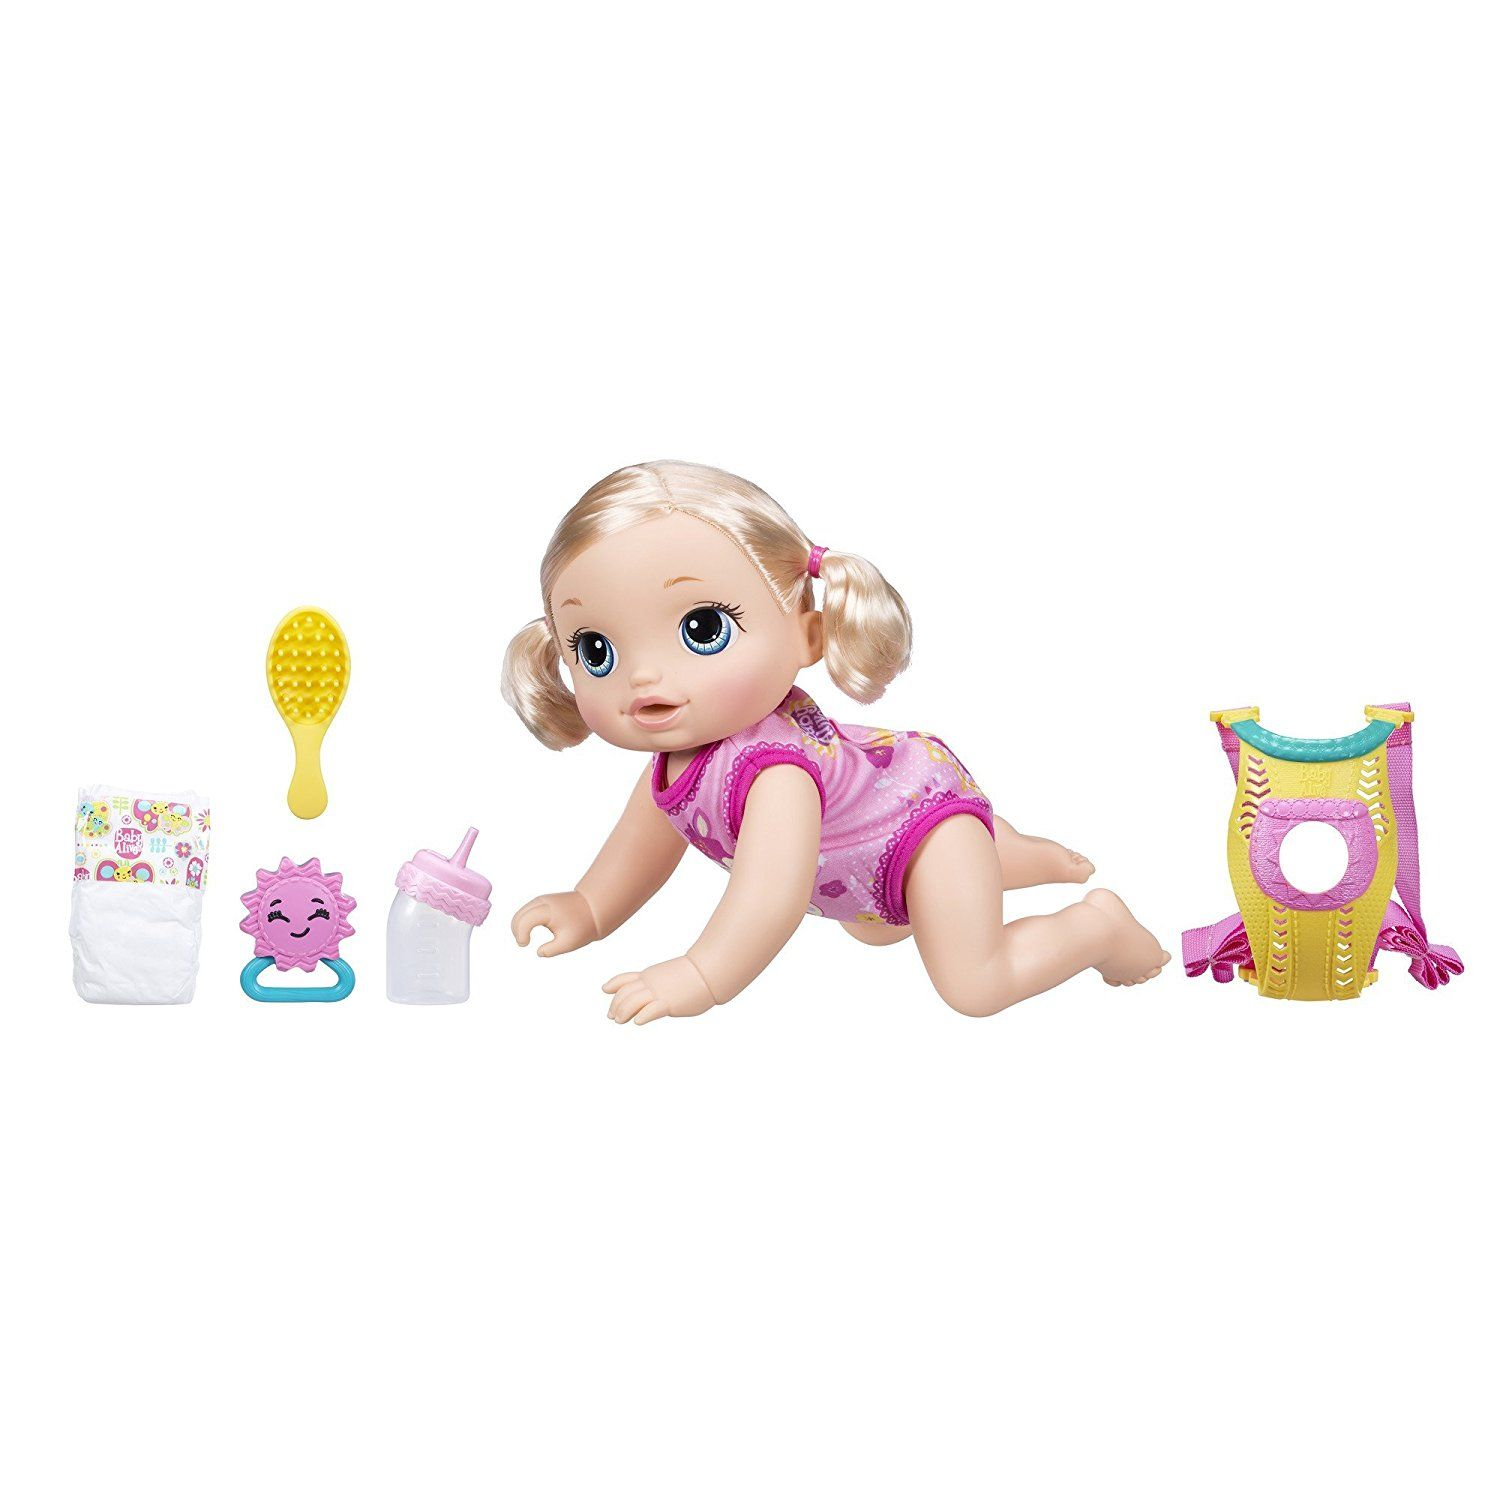 Baby Alive Baby Go Bye Bye 22 49 Best Price Become A Coupon Queen Baby Alive Dolls Baby Alive Interactive Baby Dolls